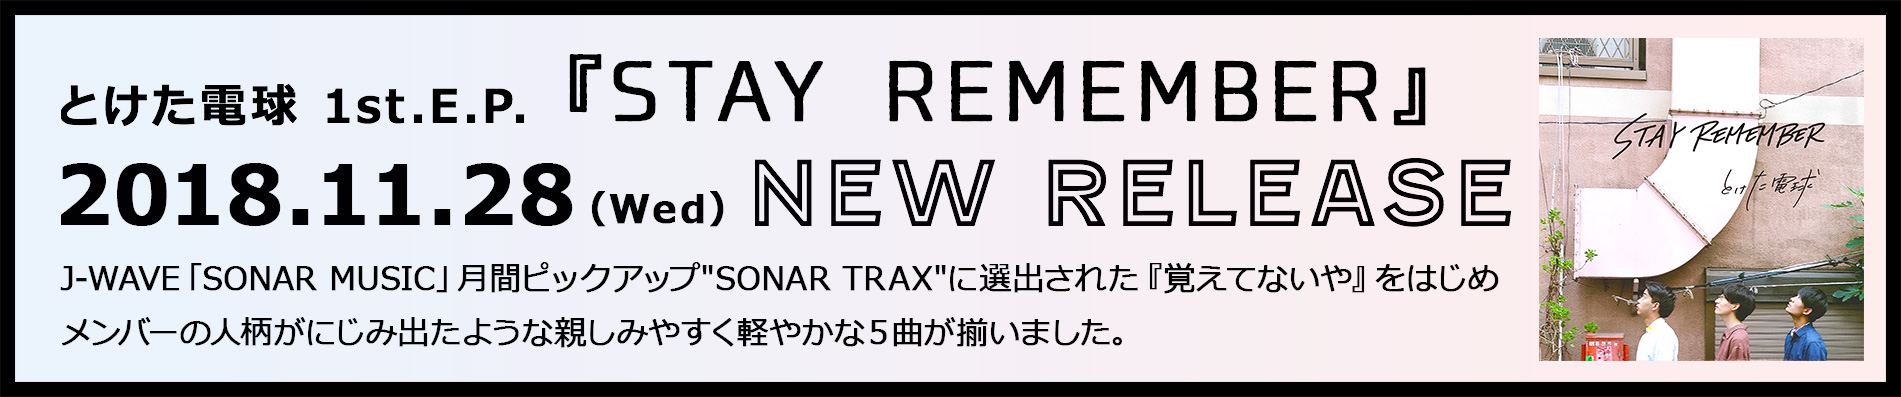 とけた電球1st.E.P.『STAY REMEMBER』